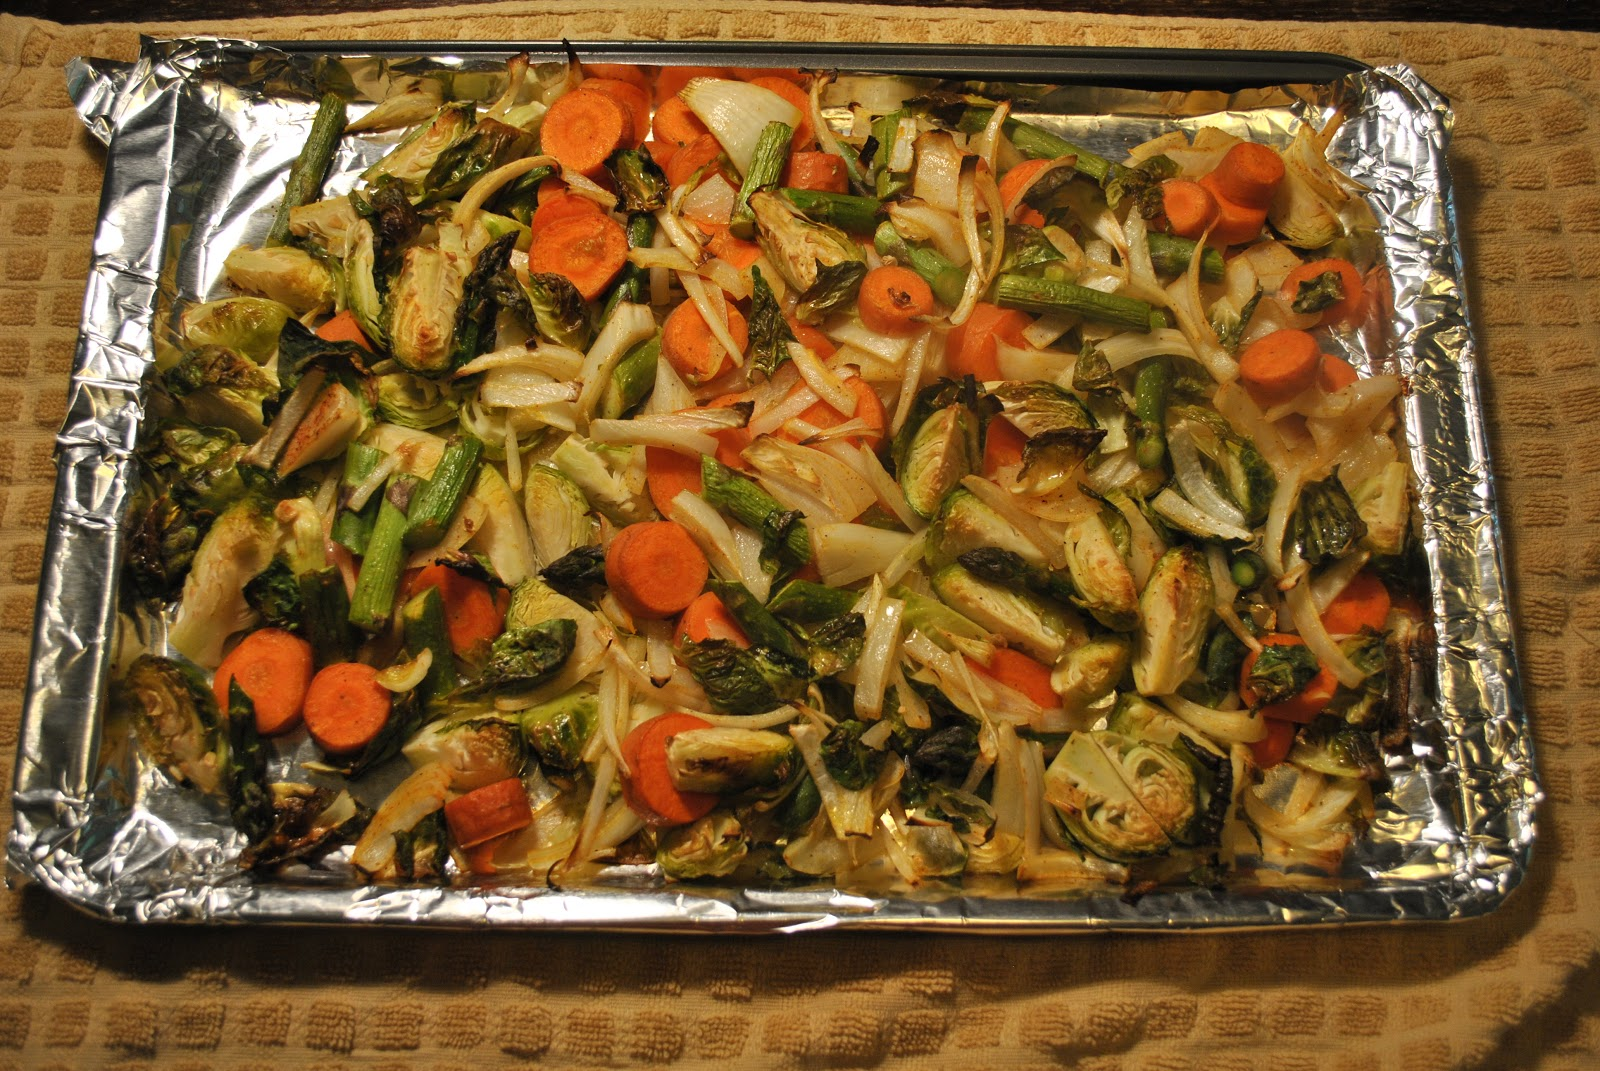 Veggies fully cooked and ready to eat